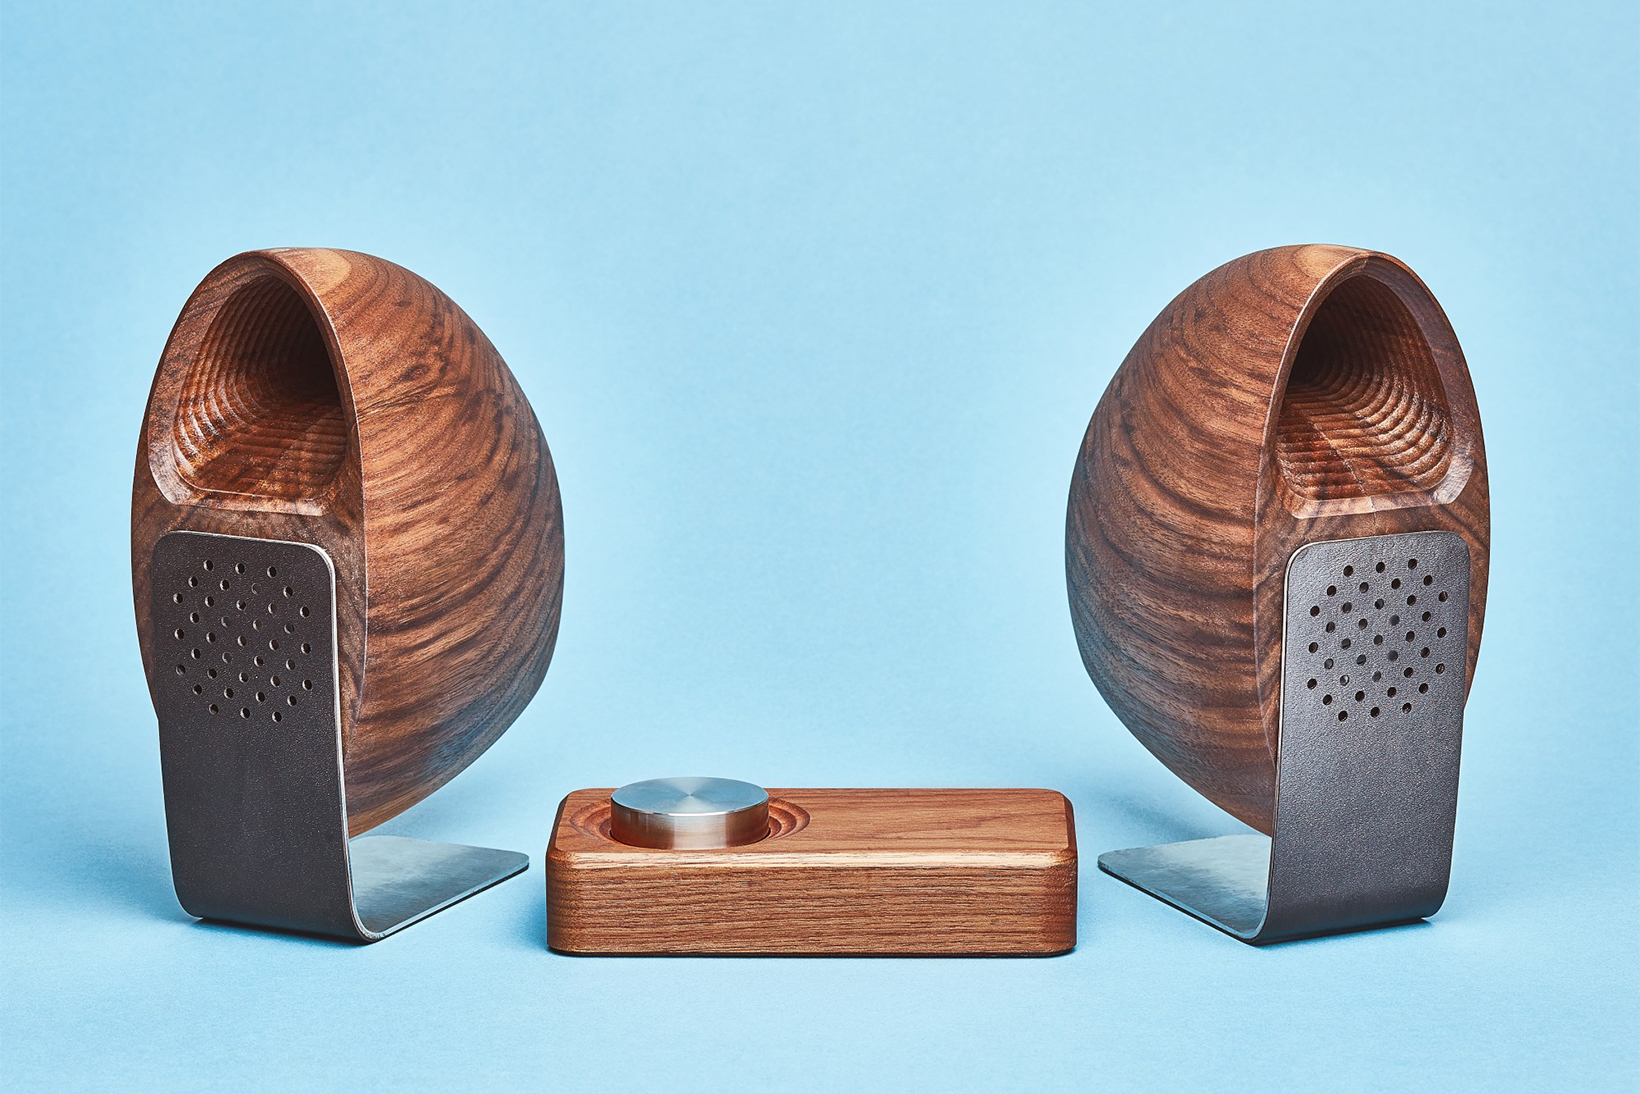 Grovemade Supplements Its Wooden Accessories With a Set of Speakers